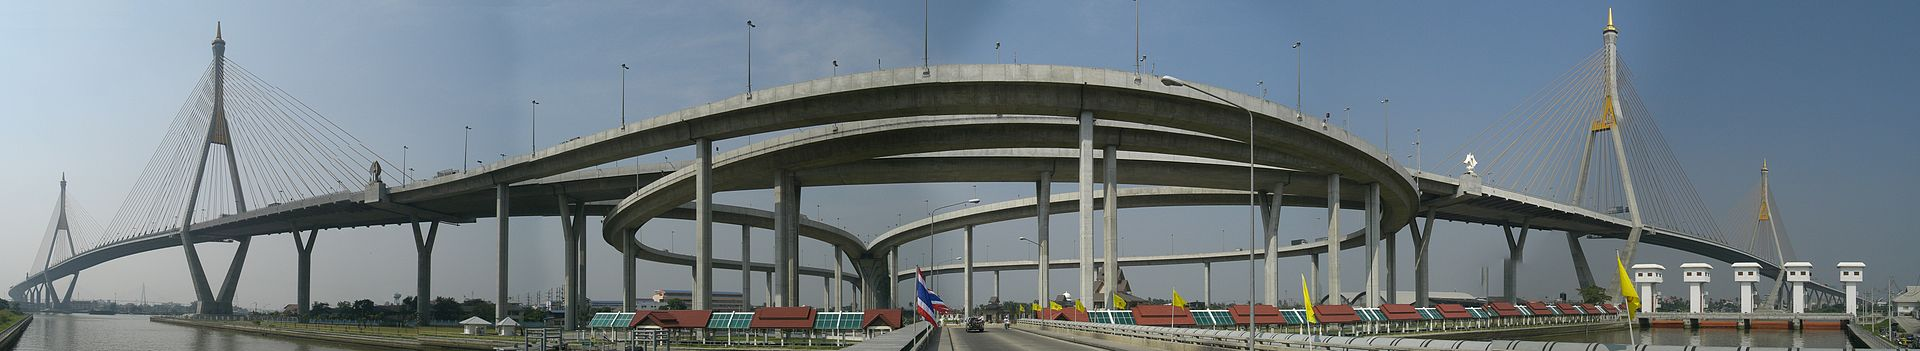 Bhumibol_Bridge_1+2panorama